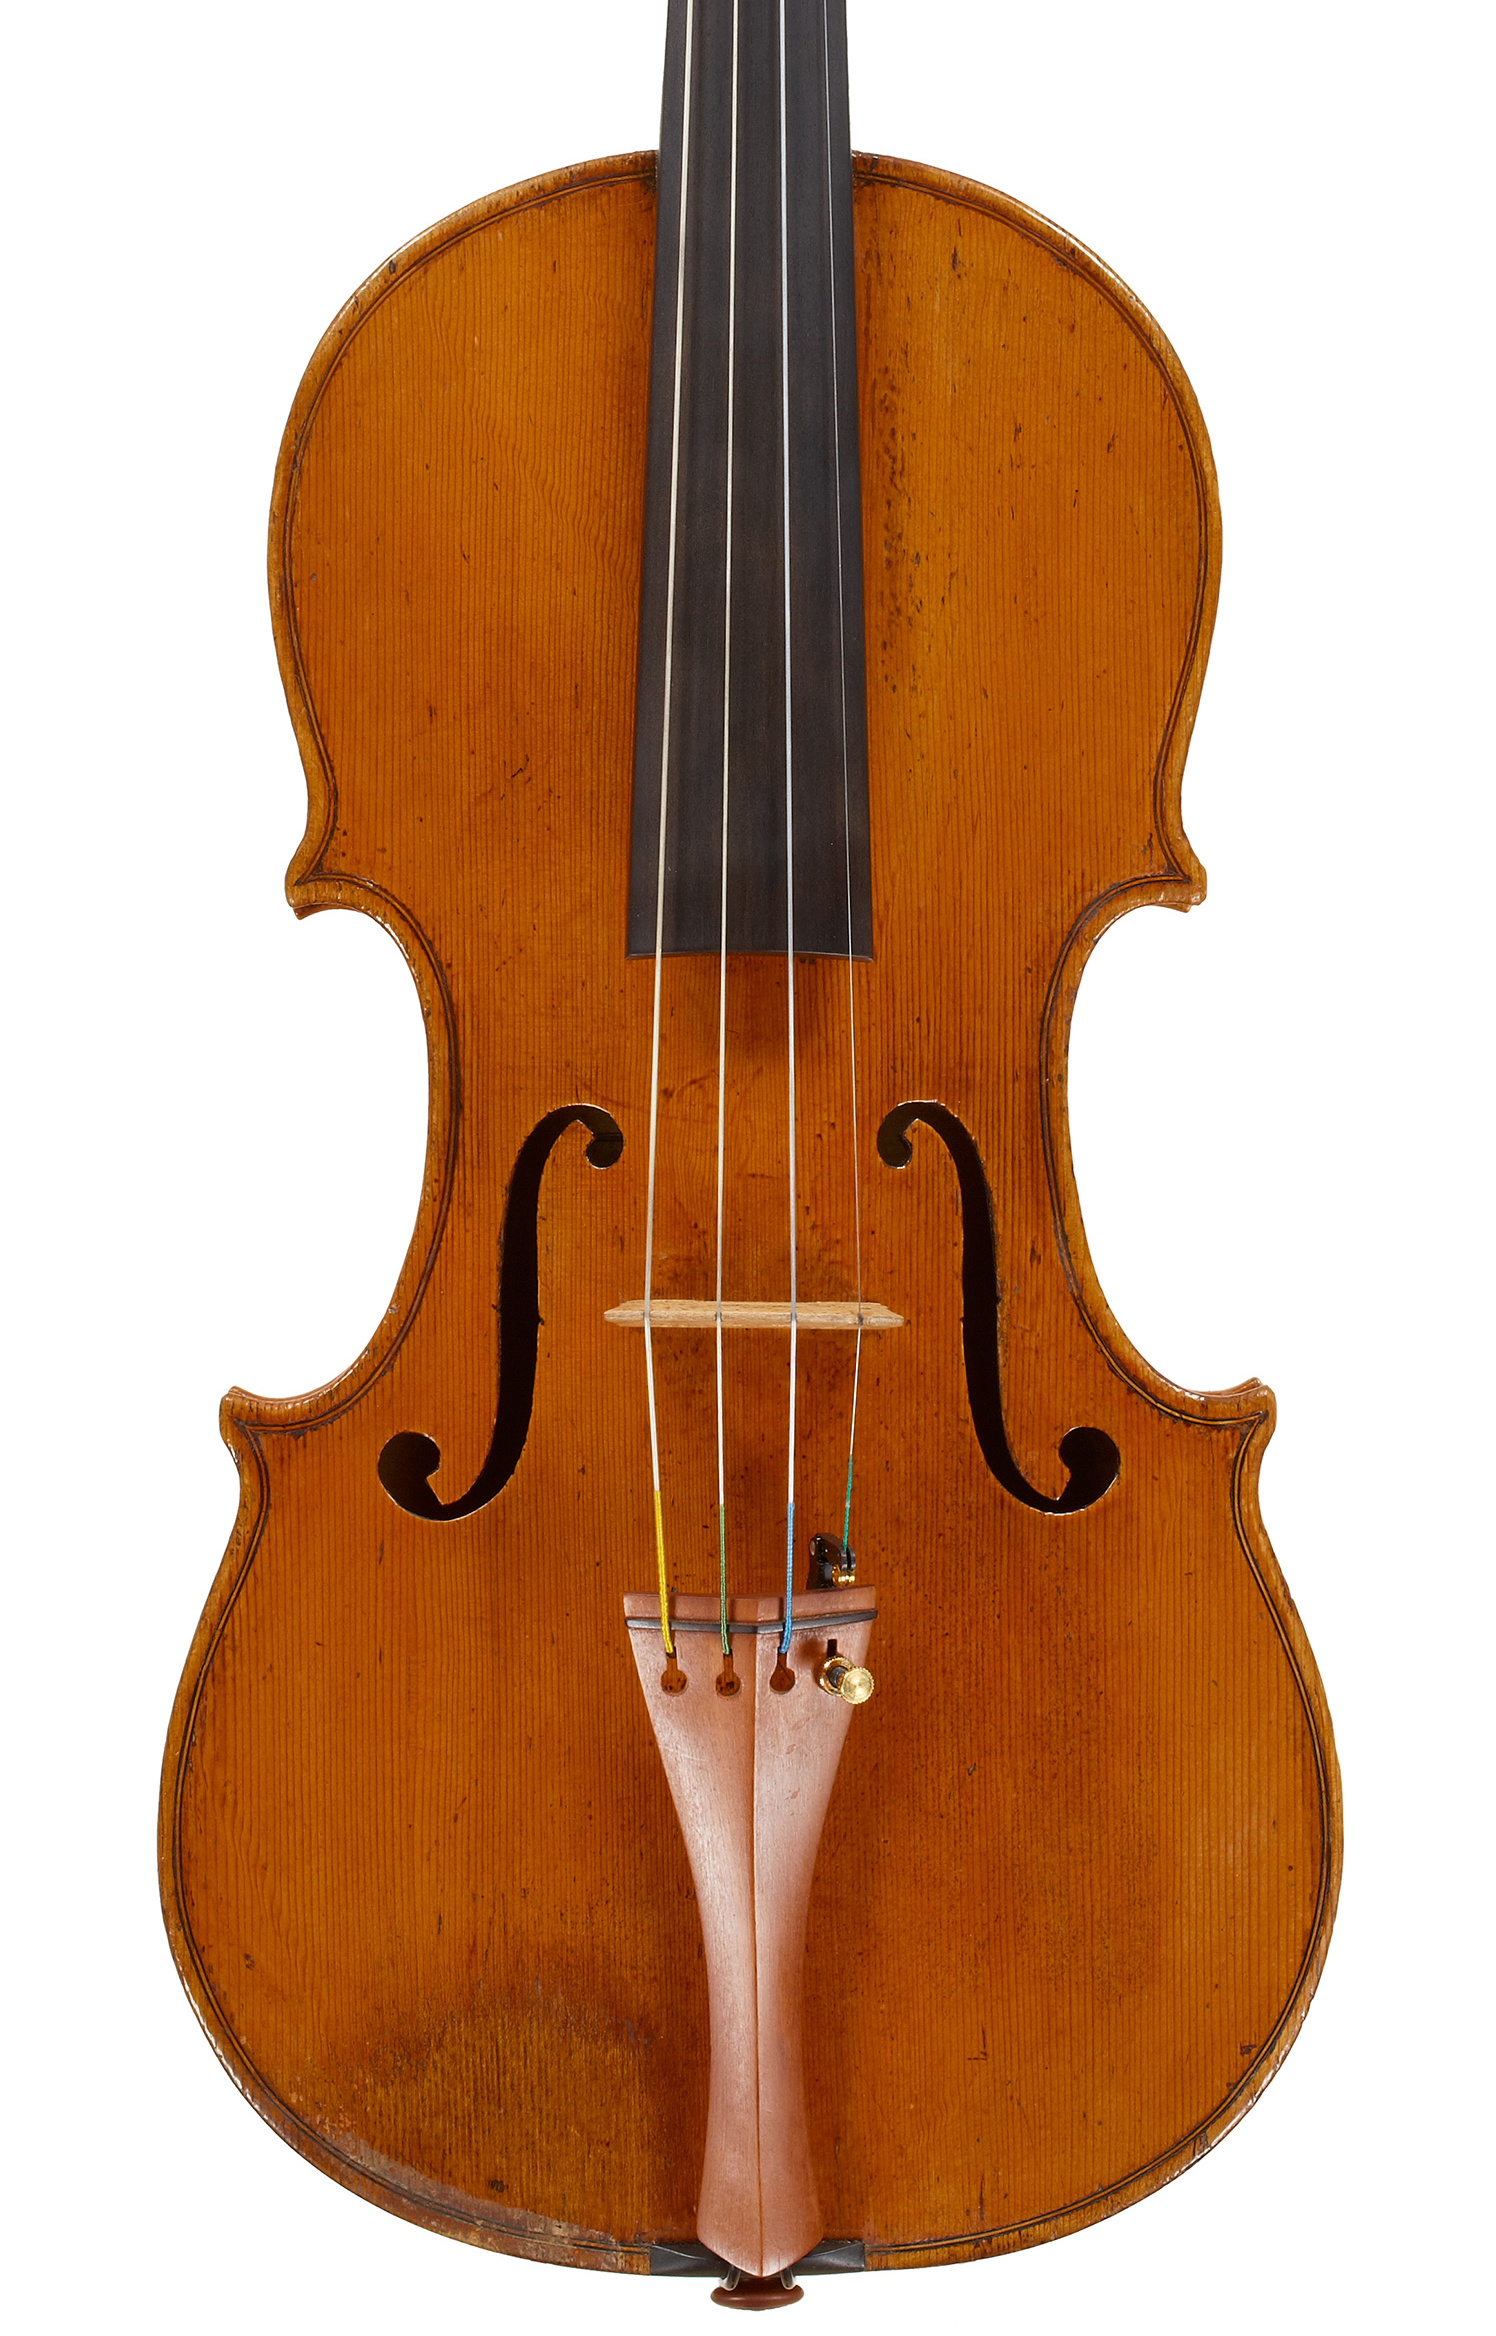 Soliani violin